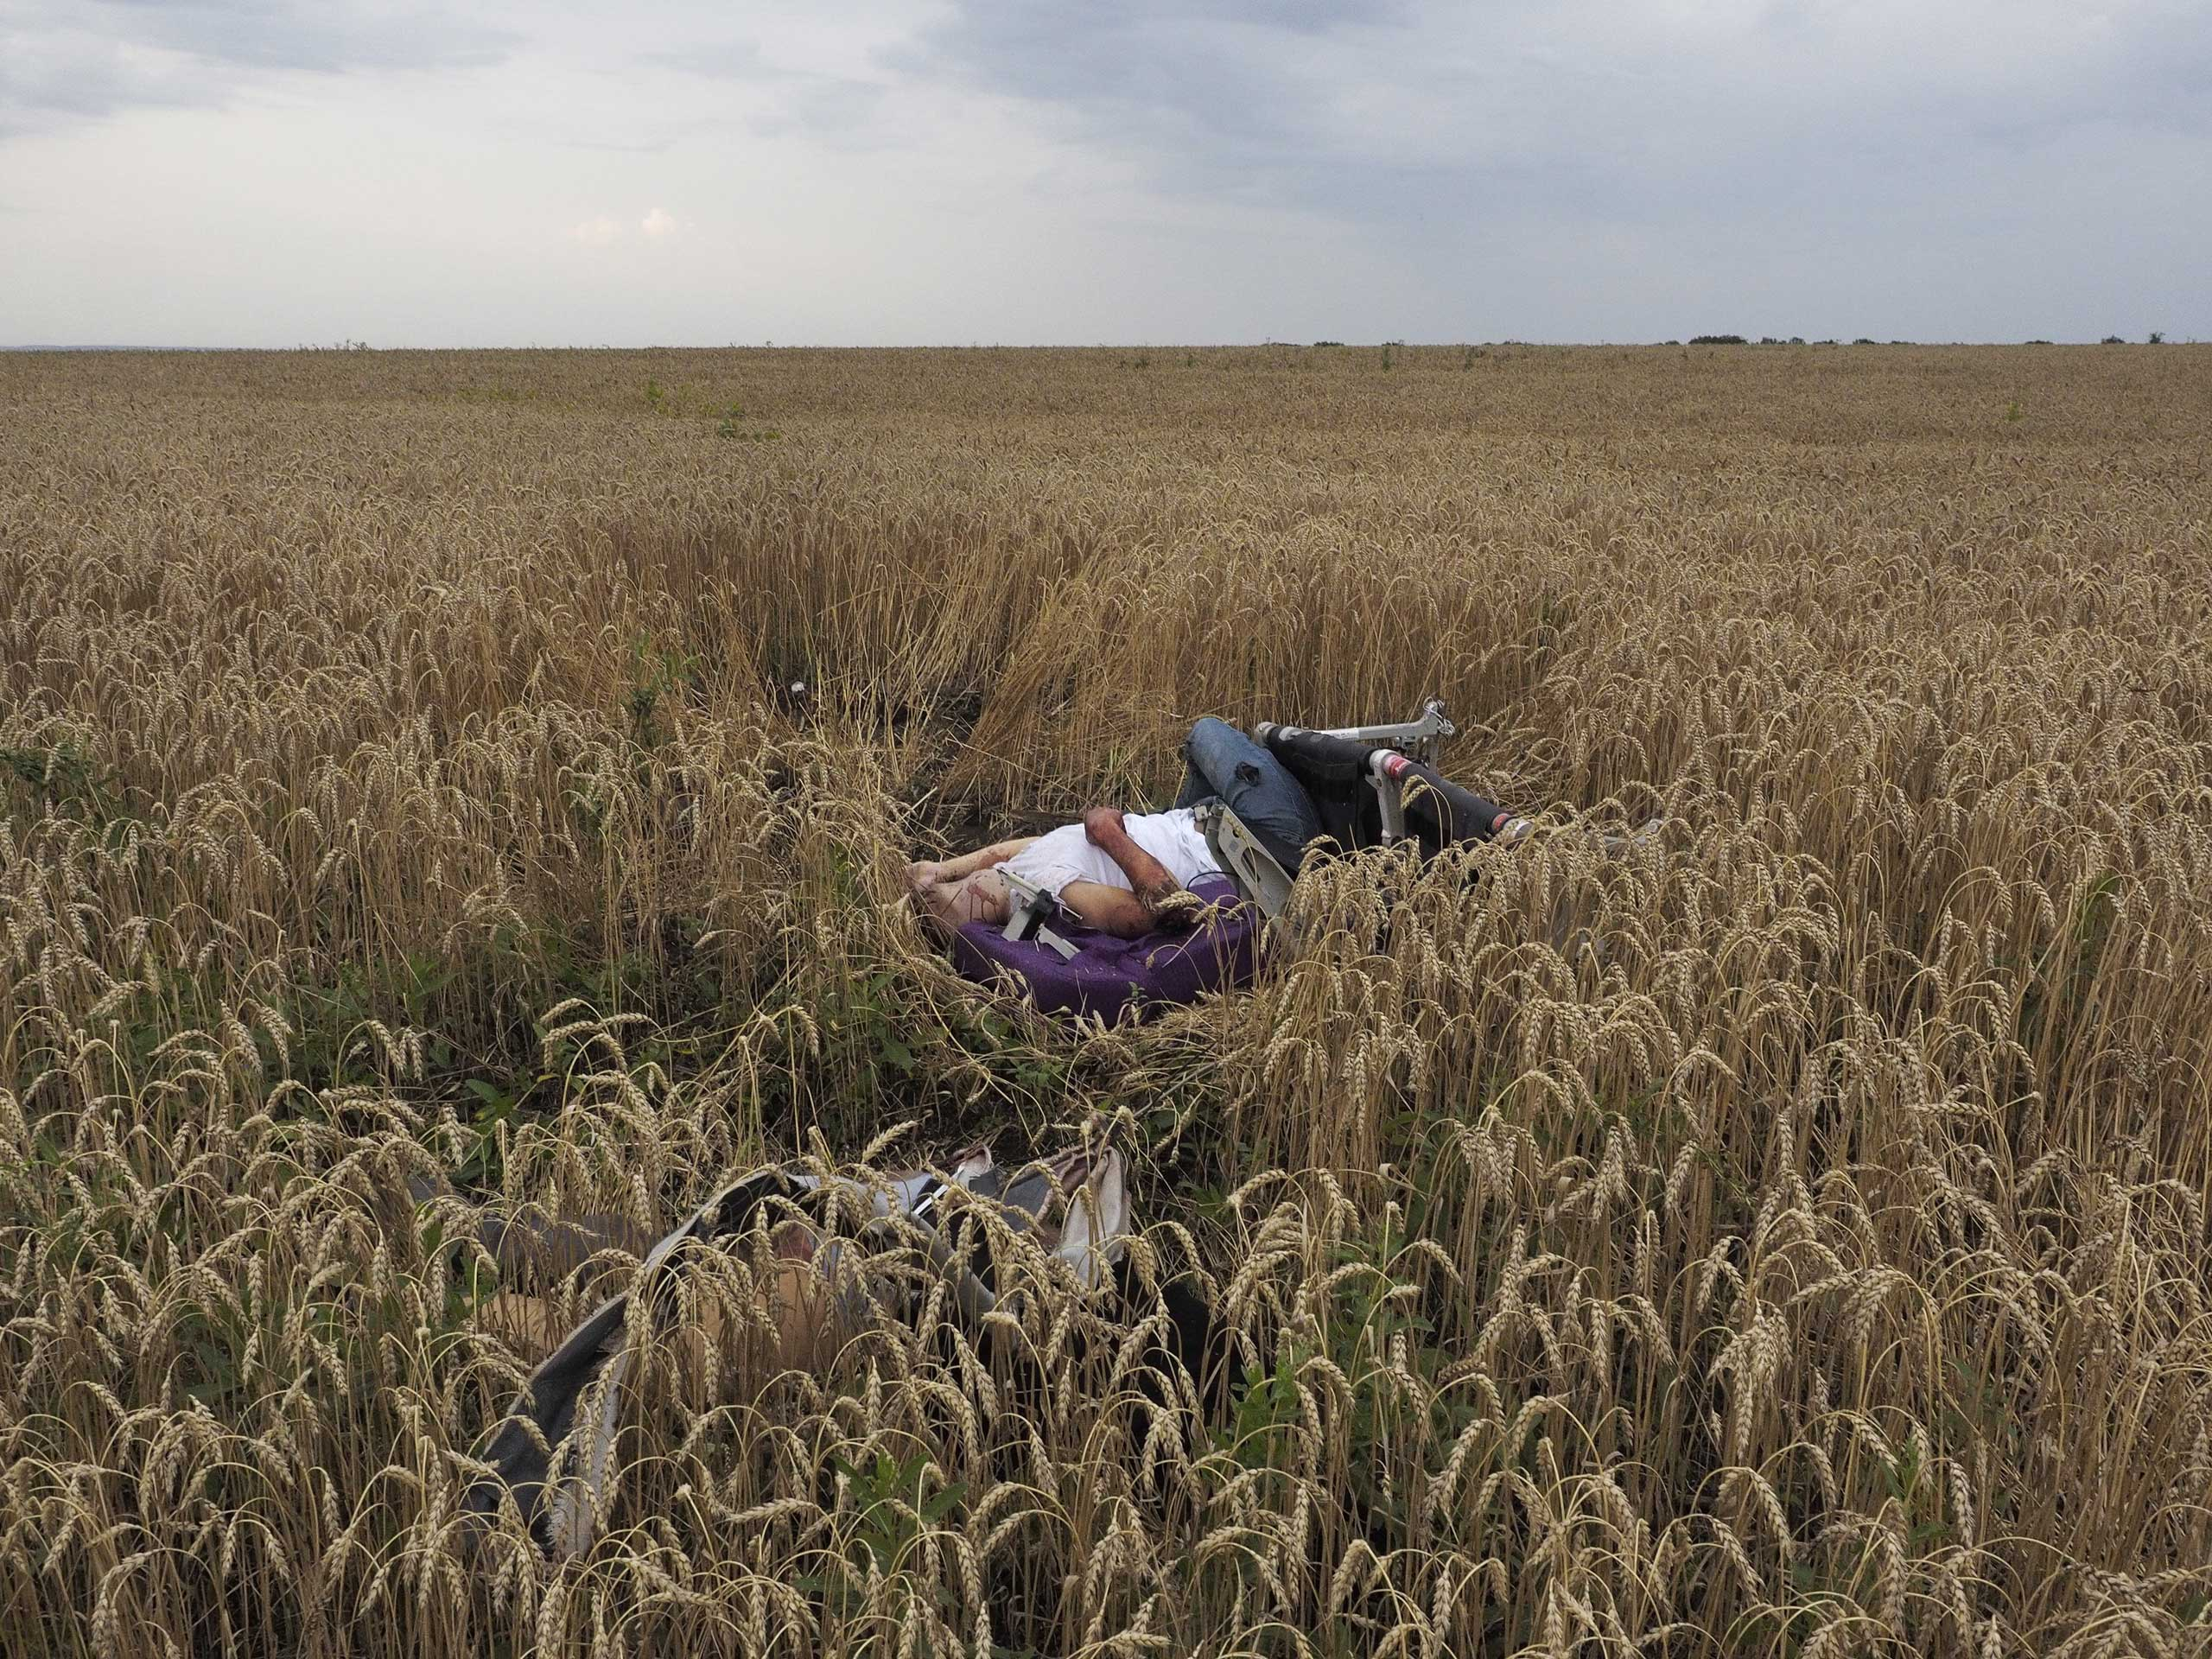 The remains of a passenger on board Malaysia Airlines flight MH17 that was shot over eastern Ukraine, July 17, 2014. From  Malaysia Airlines Ukraine Crash: 'Unreal' Scenes from Photographer Jerome Sessini